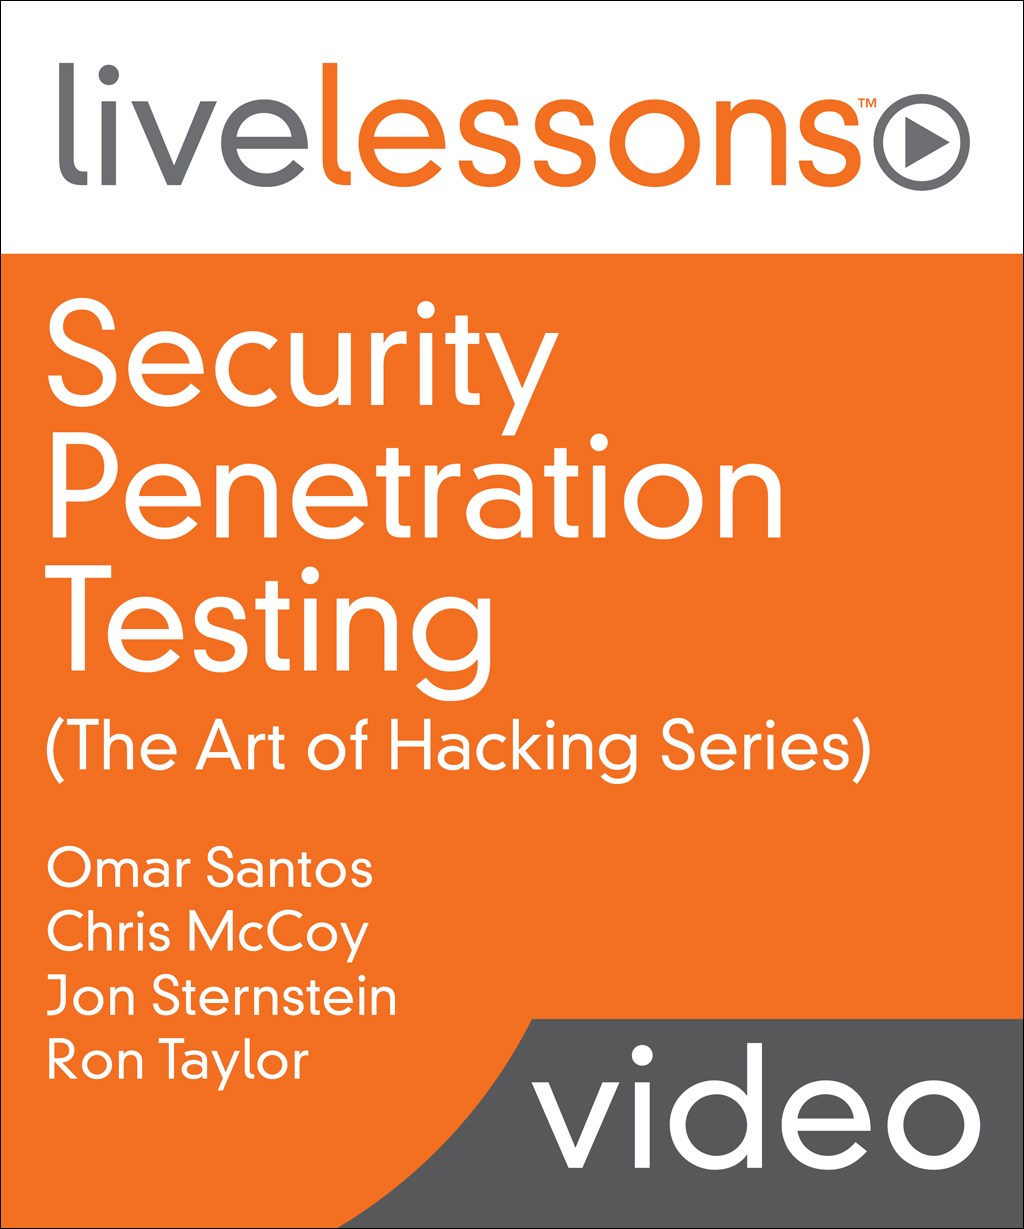 Security Penetration Testing (The Art of Hacking Series) LiveLessons